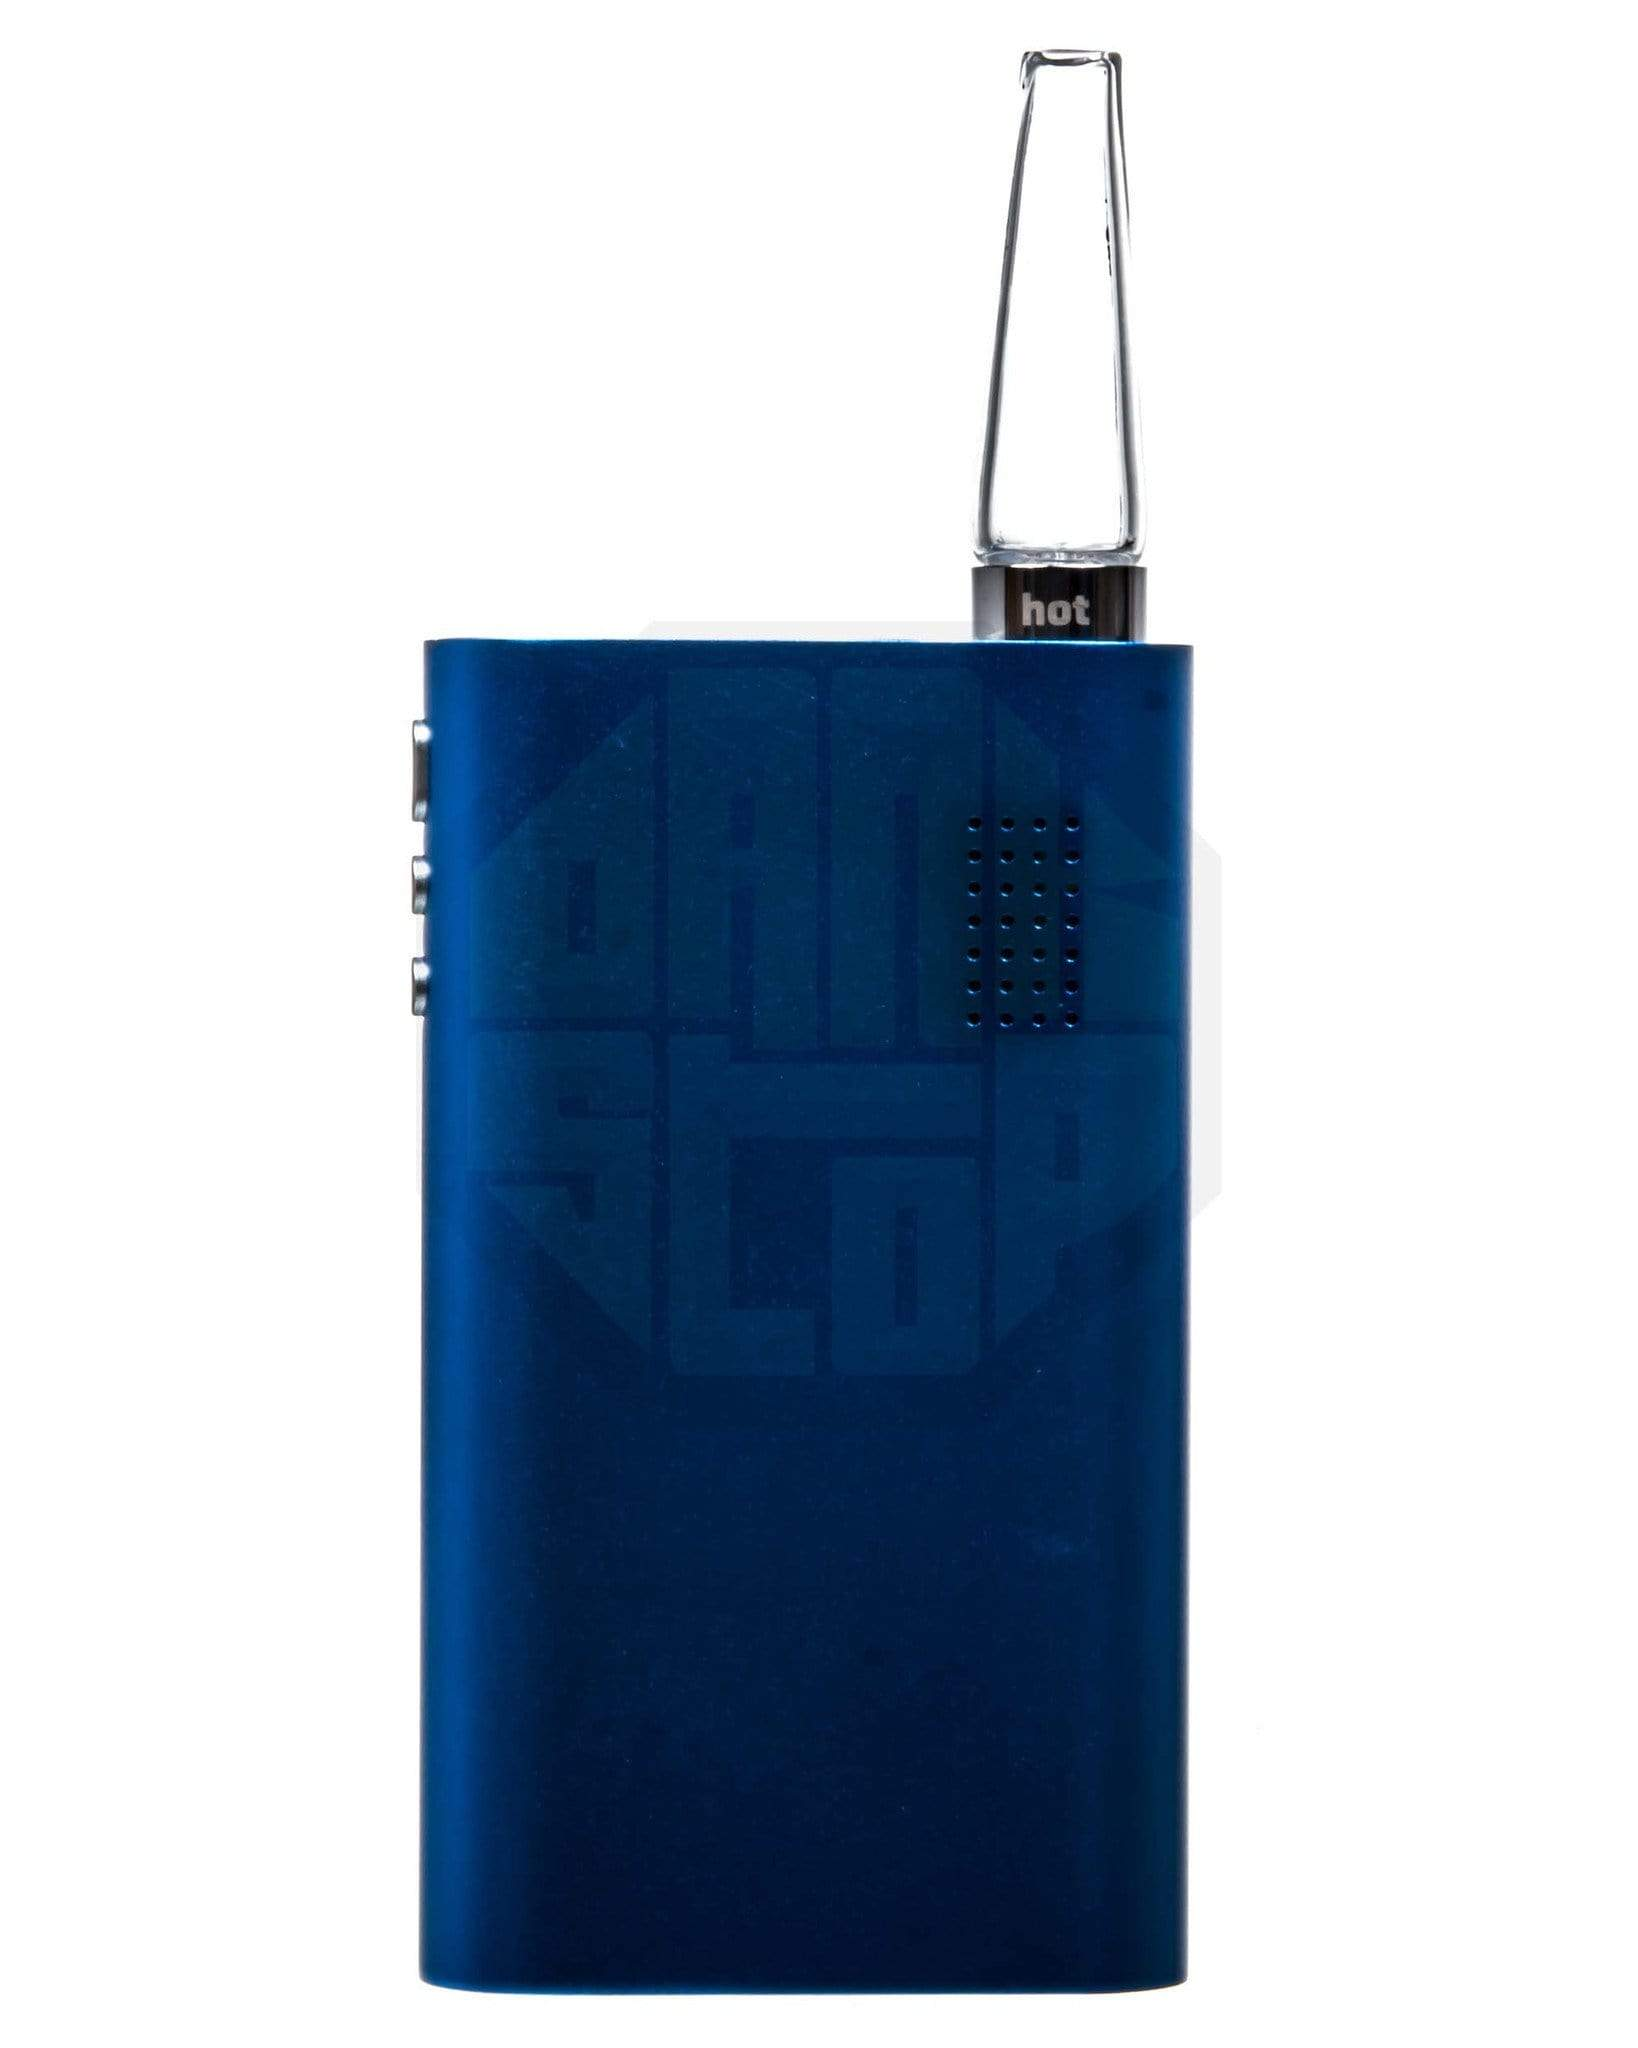 Back View of Portable Vape